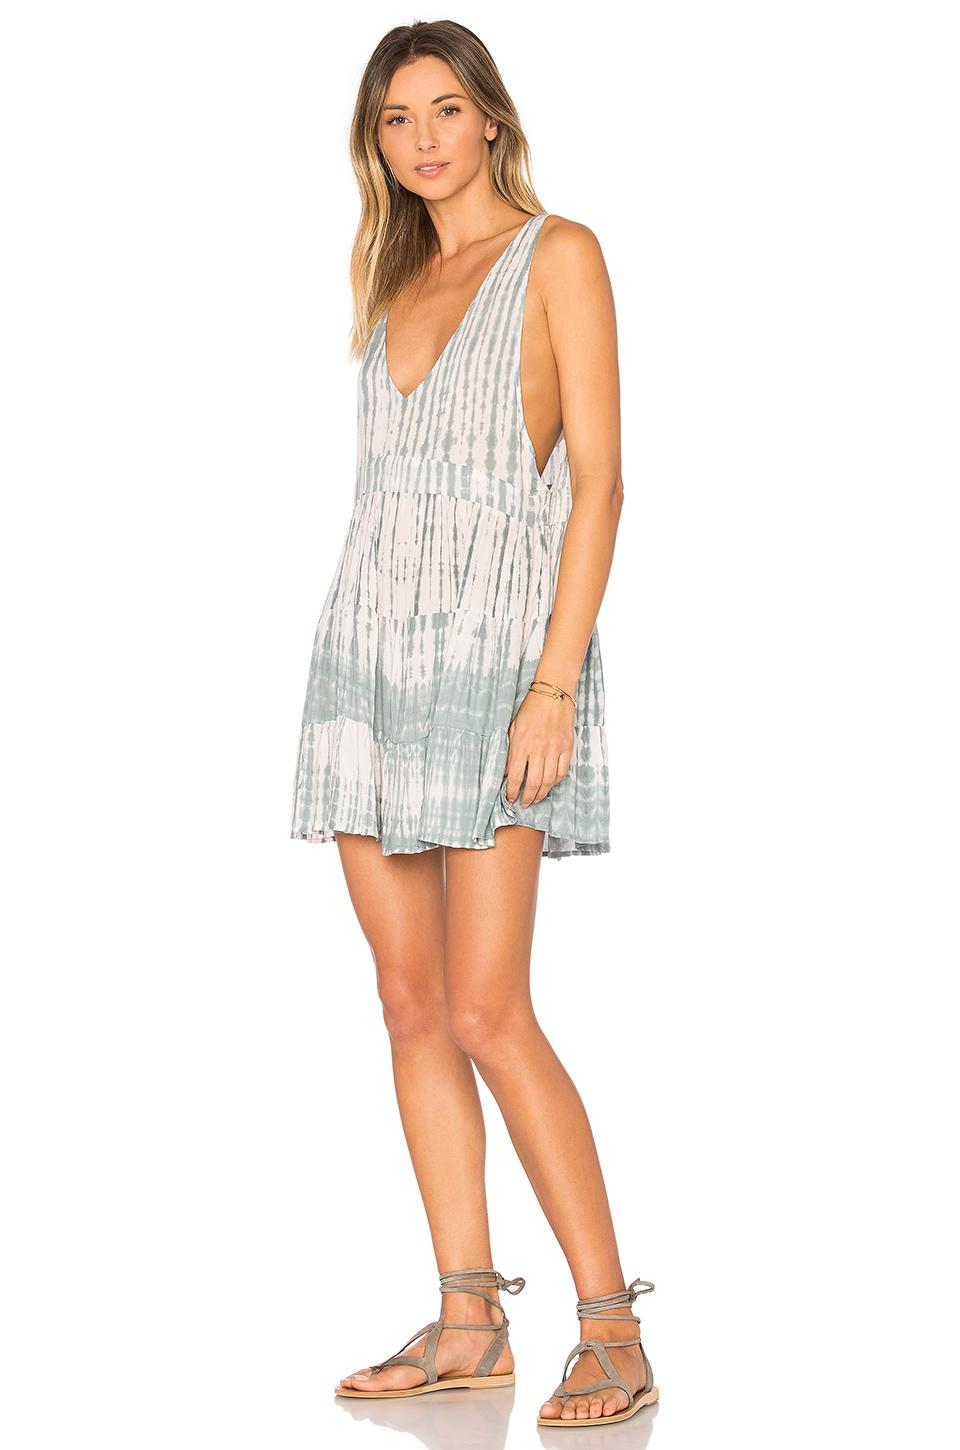 Free Shipping Cheap Real Discount Brand New Unisex Short Beach Dress with V-Neckline ACACIA Shibori - Havana Acacia Swimwear Discount Nicekicks 2018 New For Sale Outlet Where Can You Find bHpadywDke